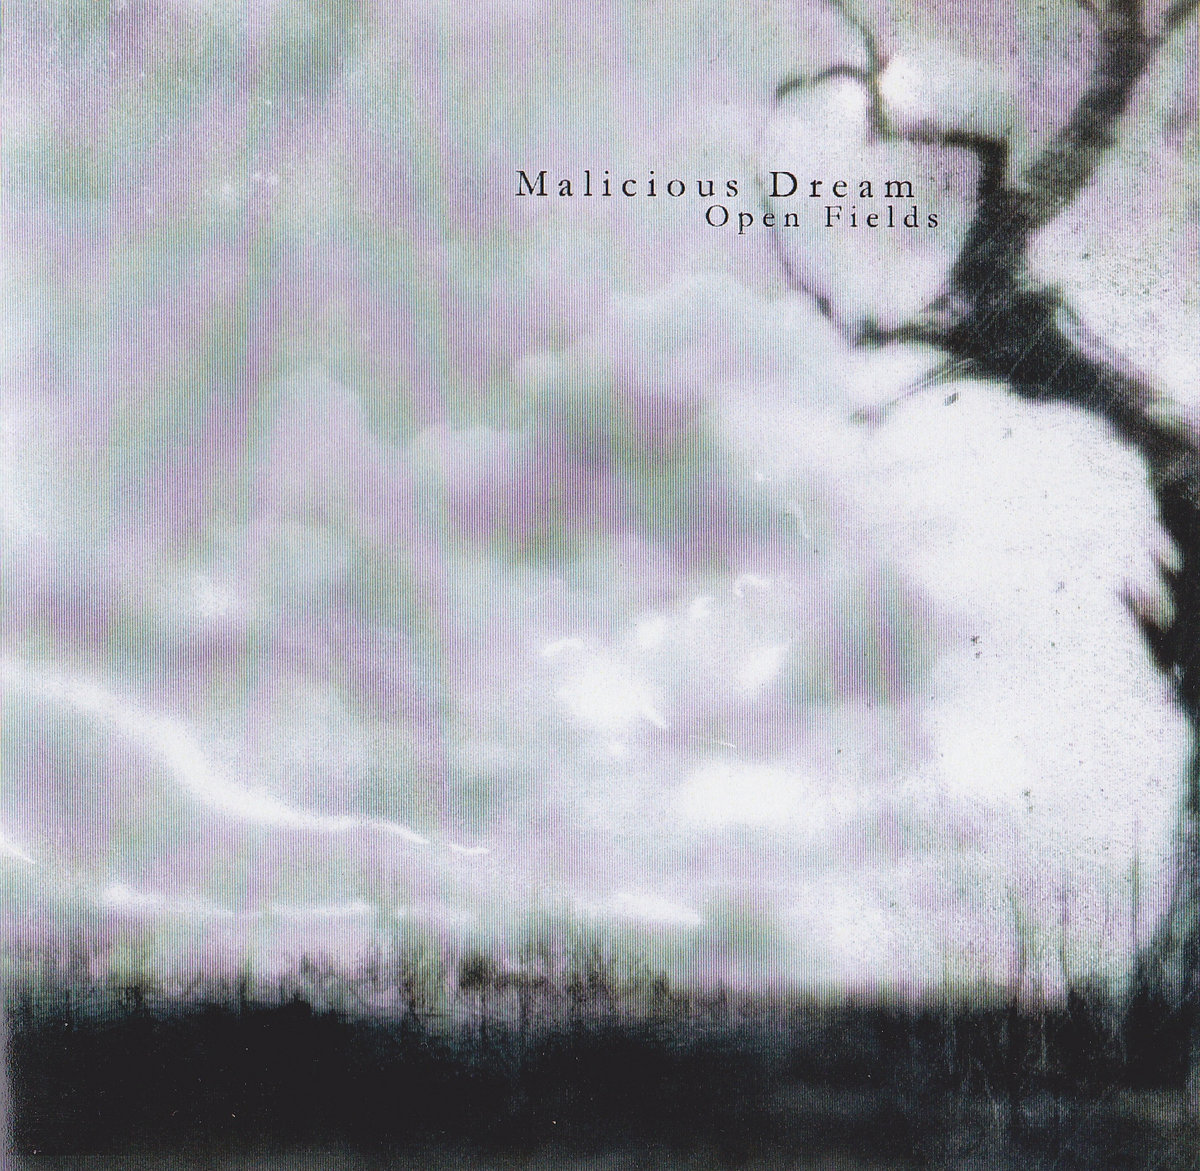 Malicious Dream - Open Fields (Demo 2003)